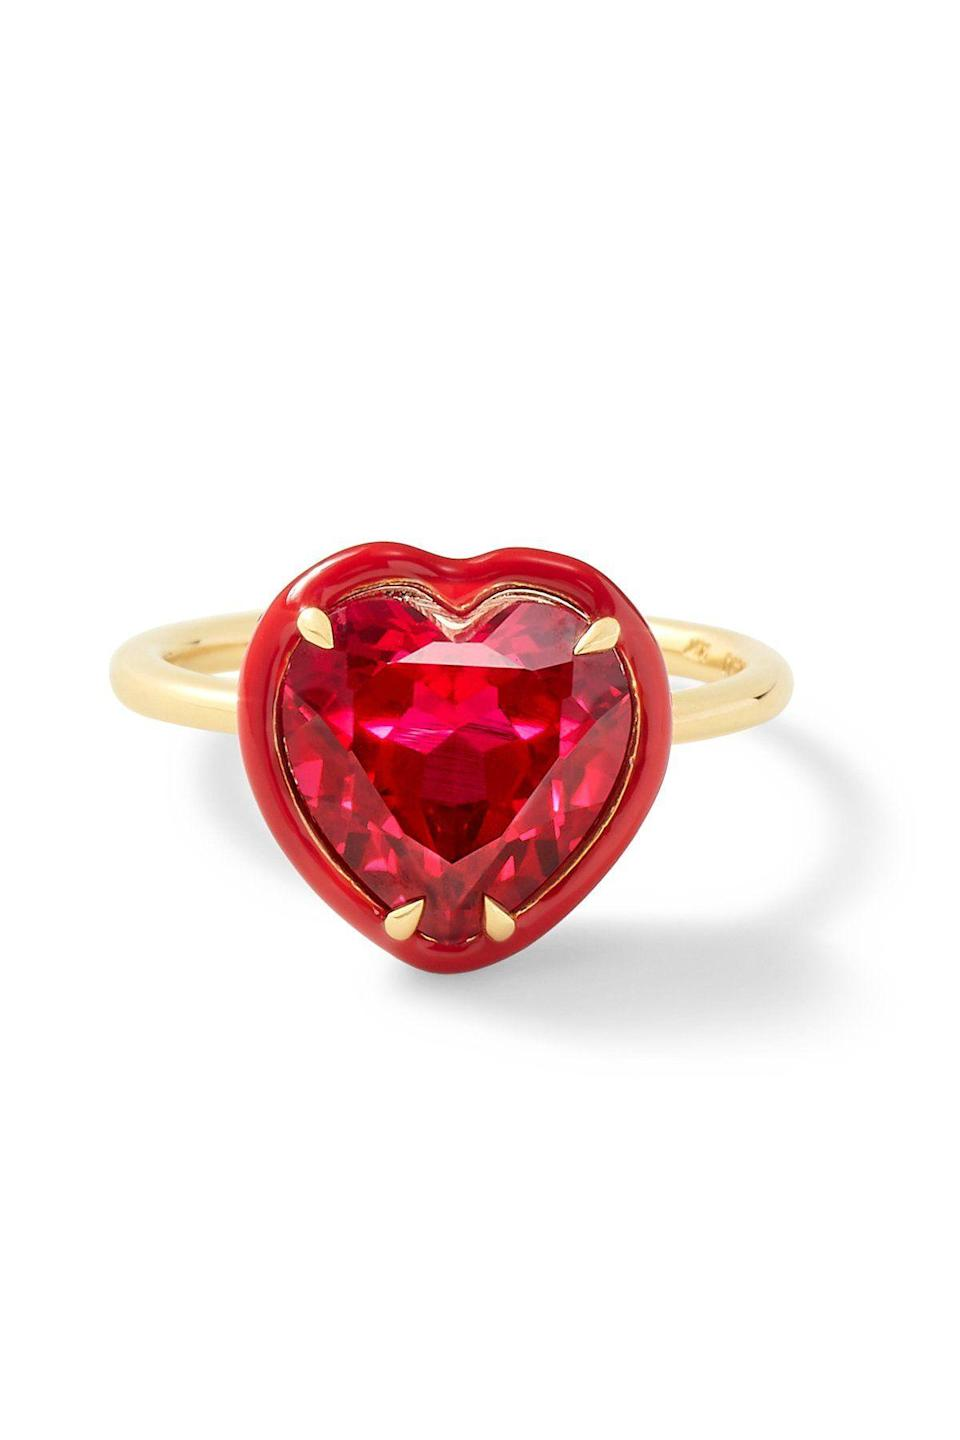 "<p><strong>Alison Lou</strong></p><p>alisonlou.com</p><p><strong>$1485.00</strong></p><p><a href=""https://www.alisonlou.com/collections/whats-new/products/heart-shaped-ruby-cocktail-ring"" rel=""nofollow noopener"" target=""_blank"" data-ylk=""slk:Shop Now"" class=""link rapid-noclick-resp"">Shop Now</a></p><p>We heart you.</p>"